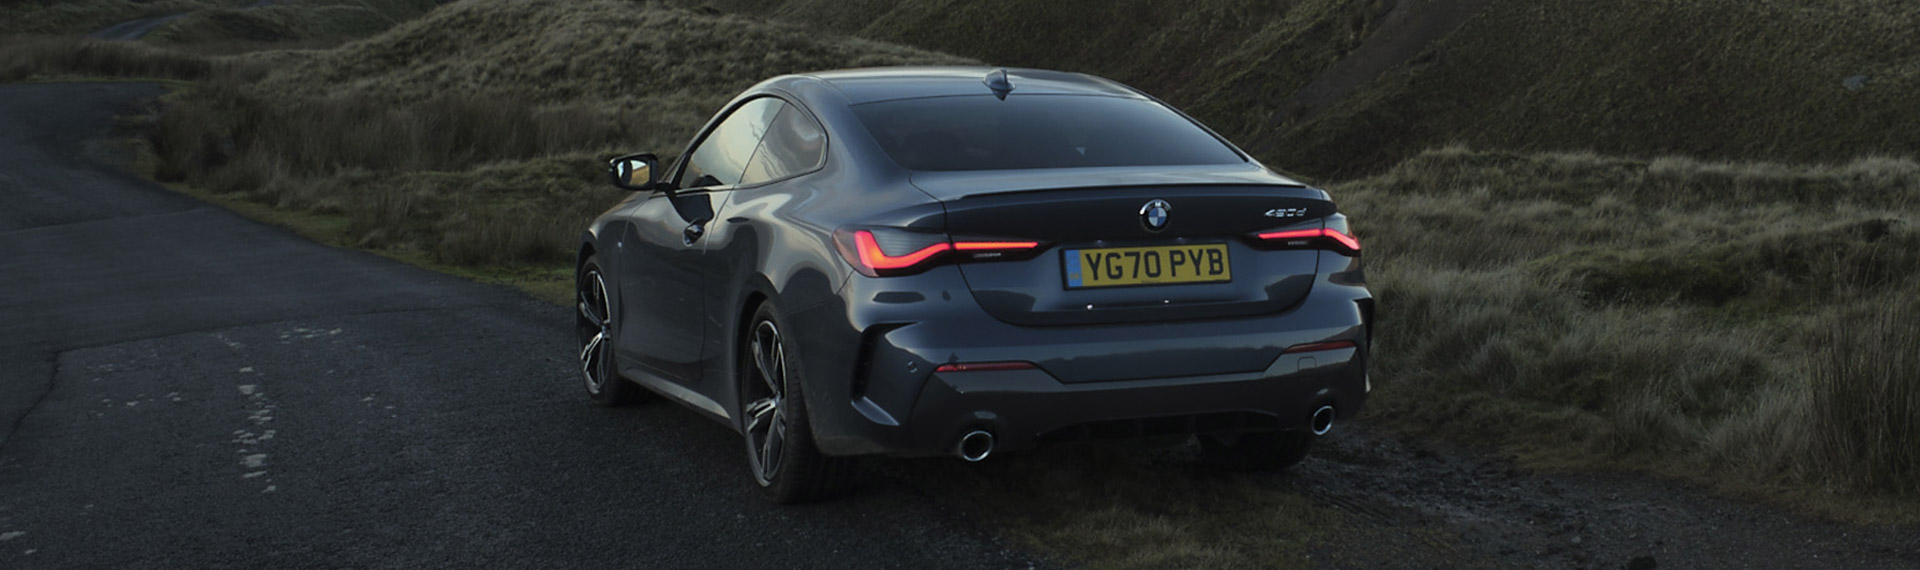 New BMW 4 Series rear 3/4 view